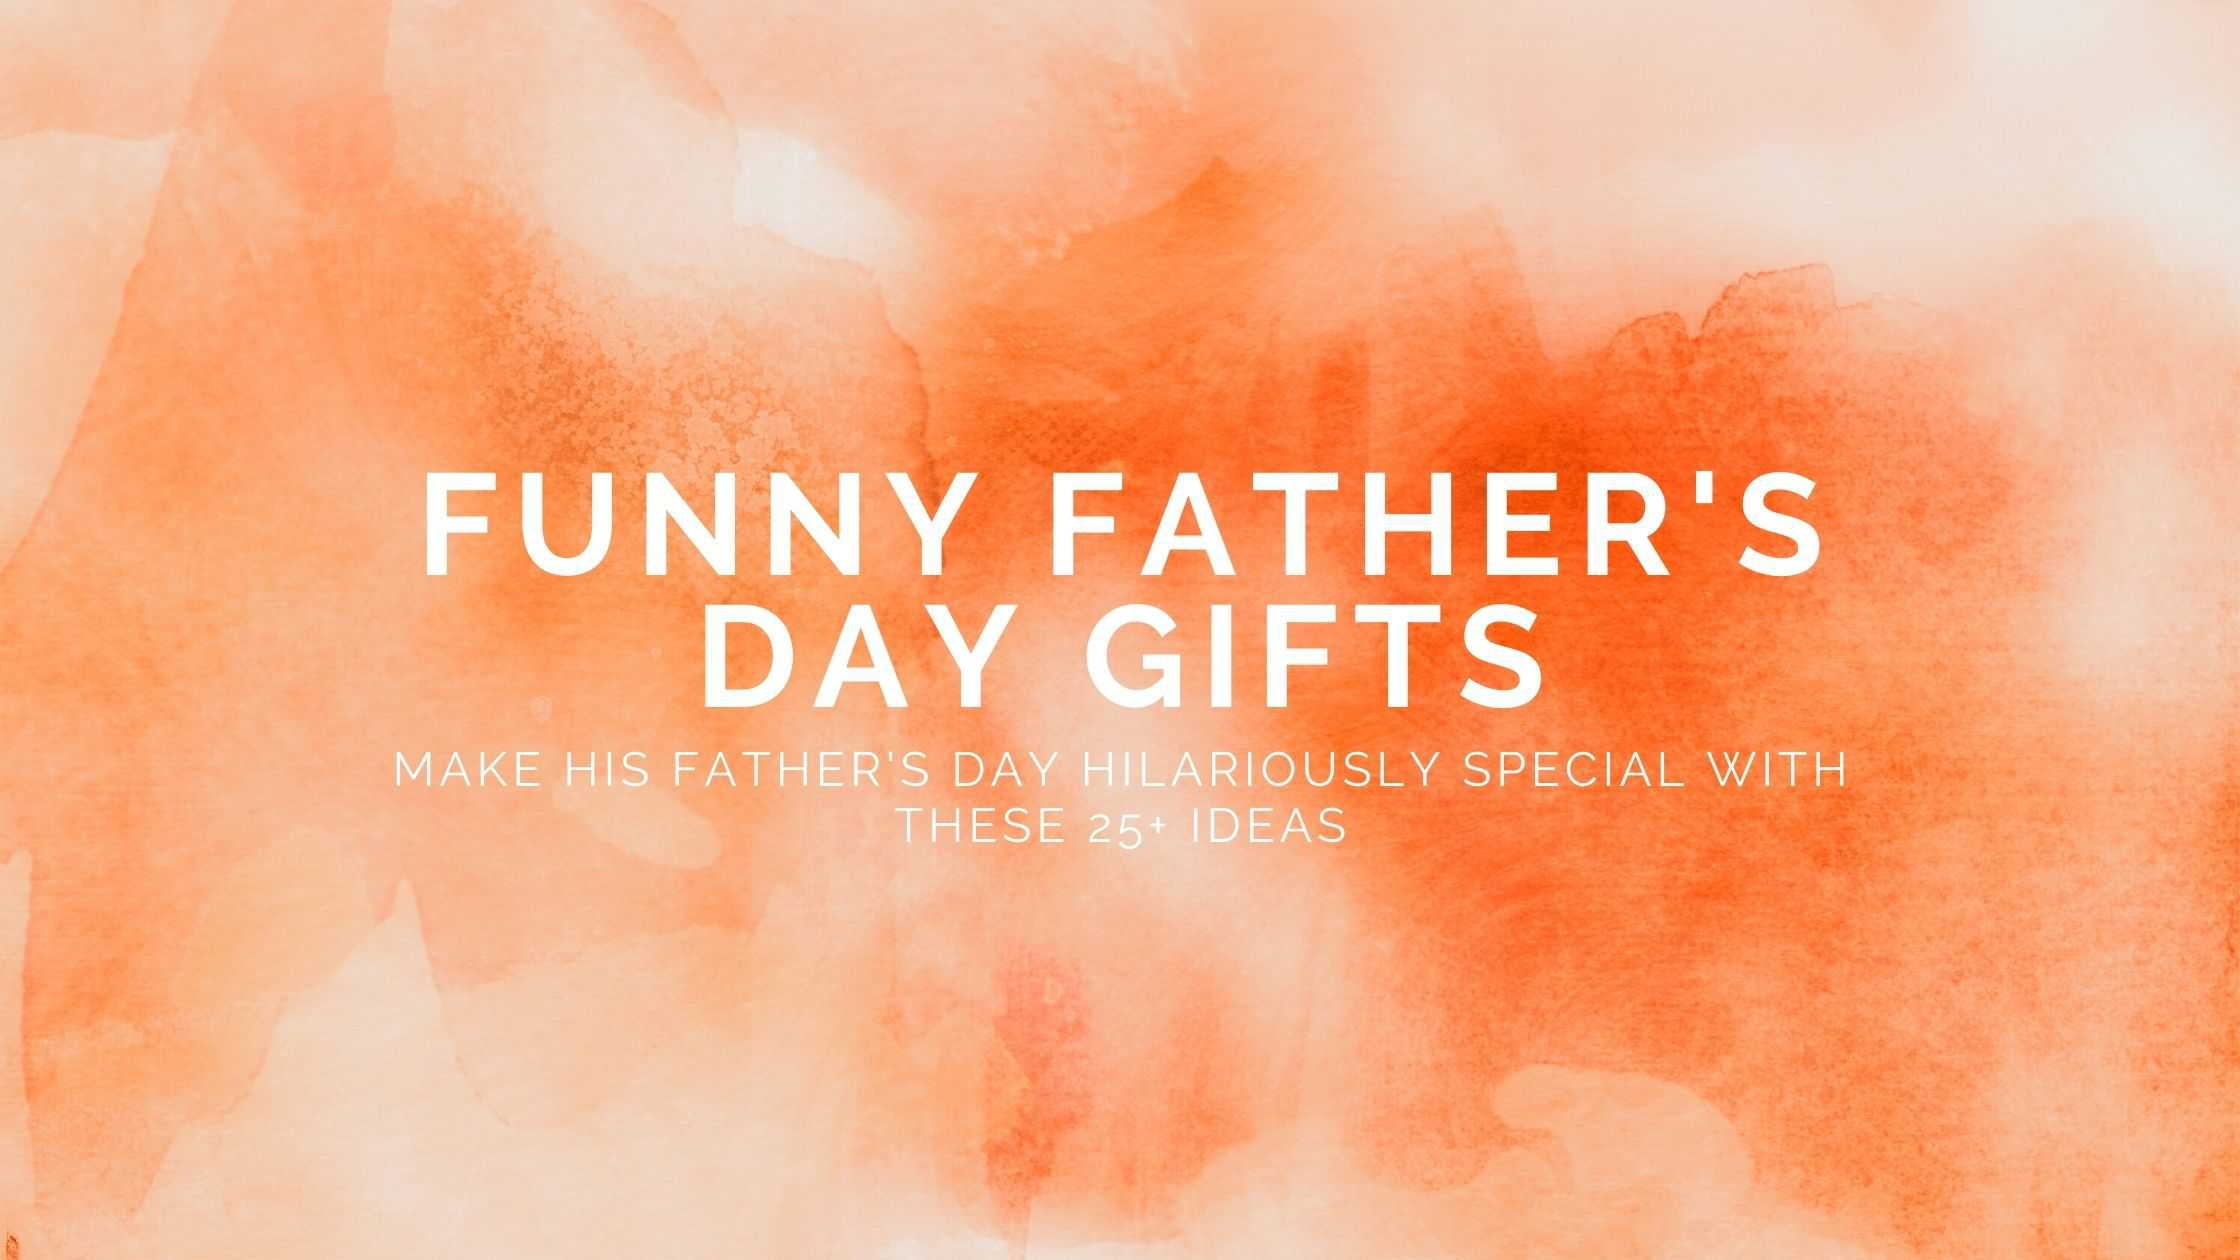 25+ Funny Father's Day Gift Ideas for Your Hilarious Dad (2021)